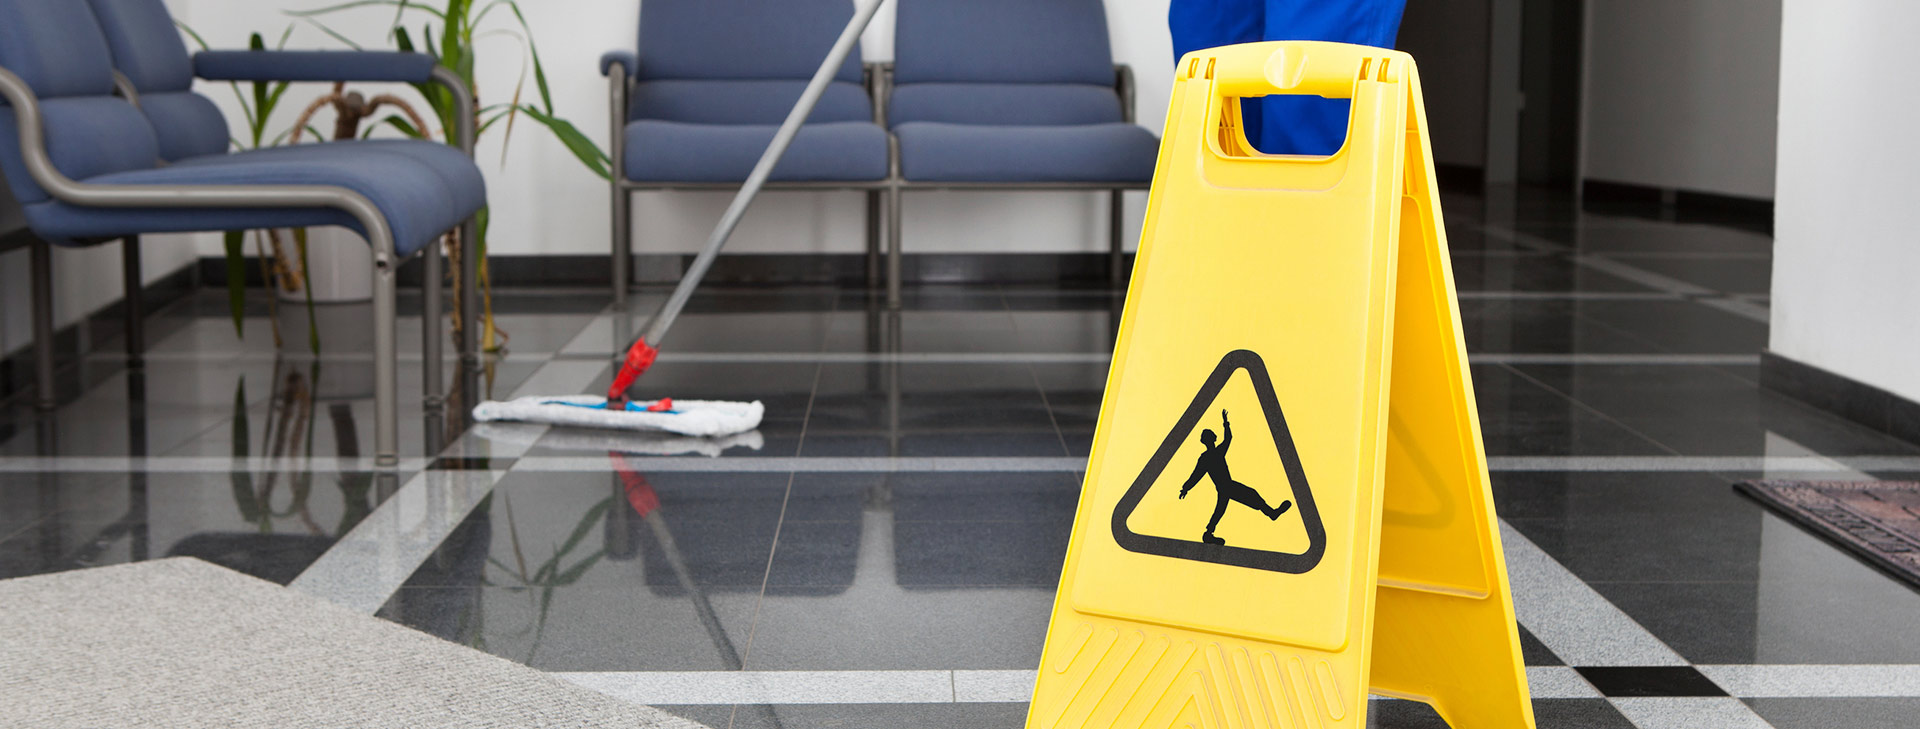 janitorial-cleaning-service